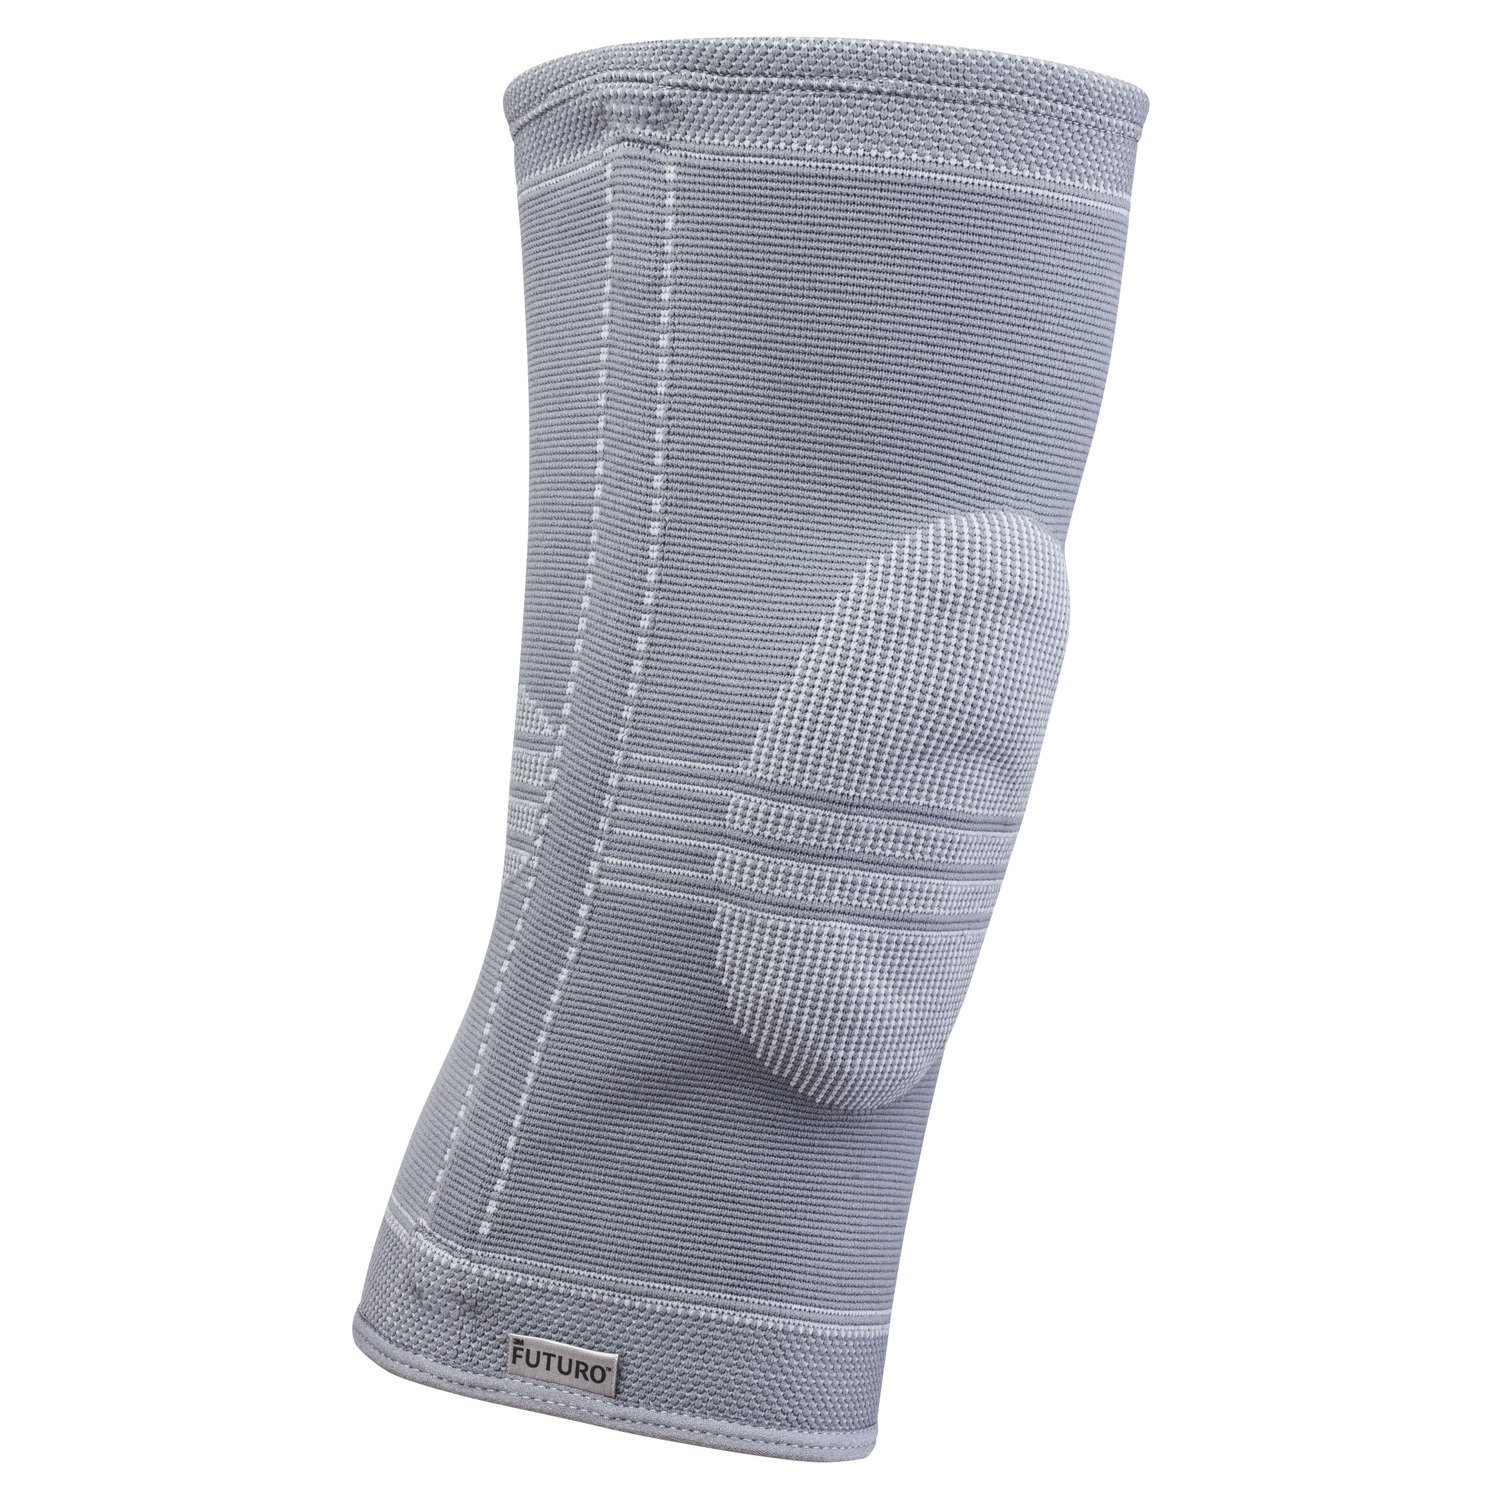 Futuro Active Knit Knee Stabilizer, Provides Support, Moderate Stabilizing Support, Medium, Gray by Futuro (Image #3)